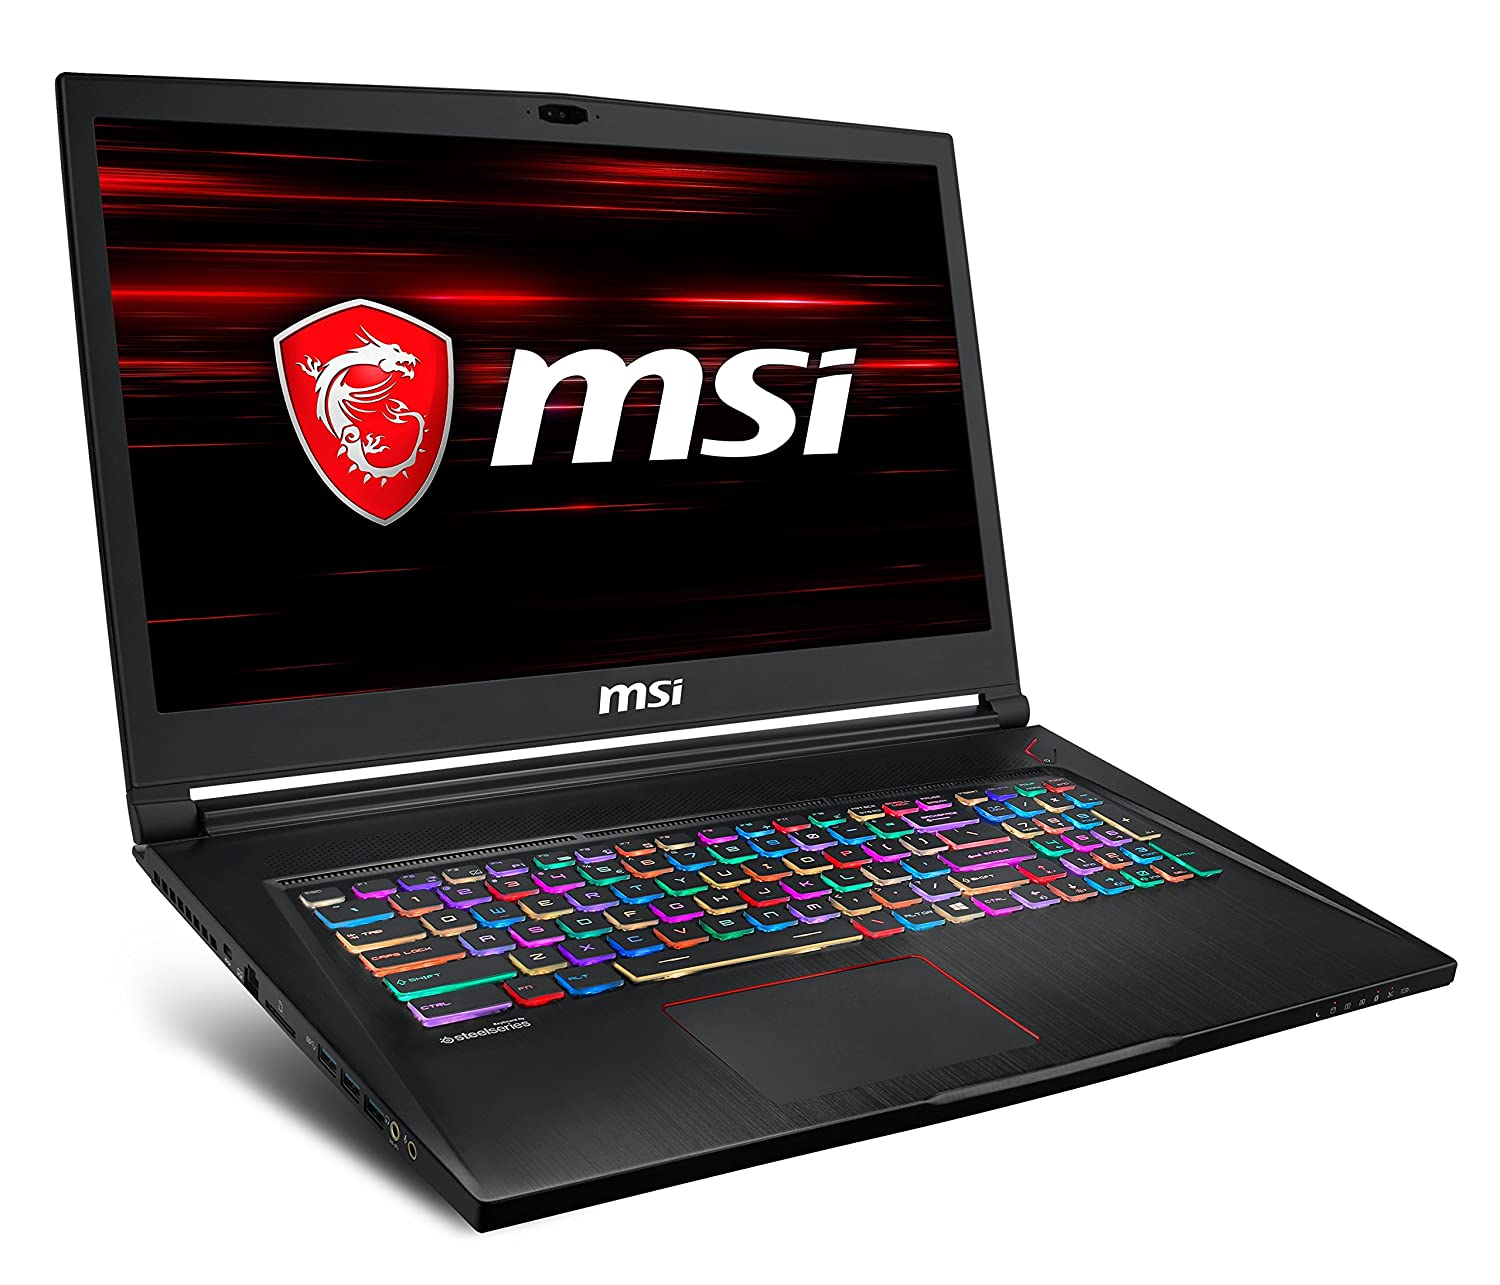 TALLA Nvidia GTX 1060 6GB | 1TB HDD + 256GB SSD. MSI GS73 Stealth 8RE-007XES - Ordenador portátil Gaming 17.3